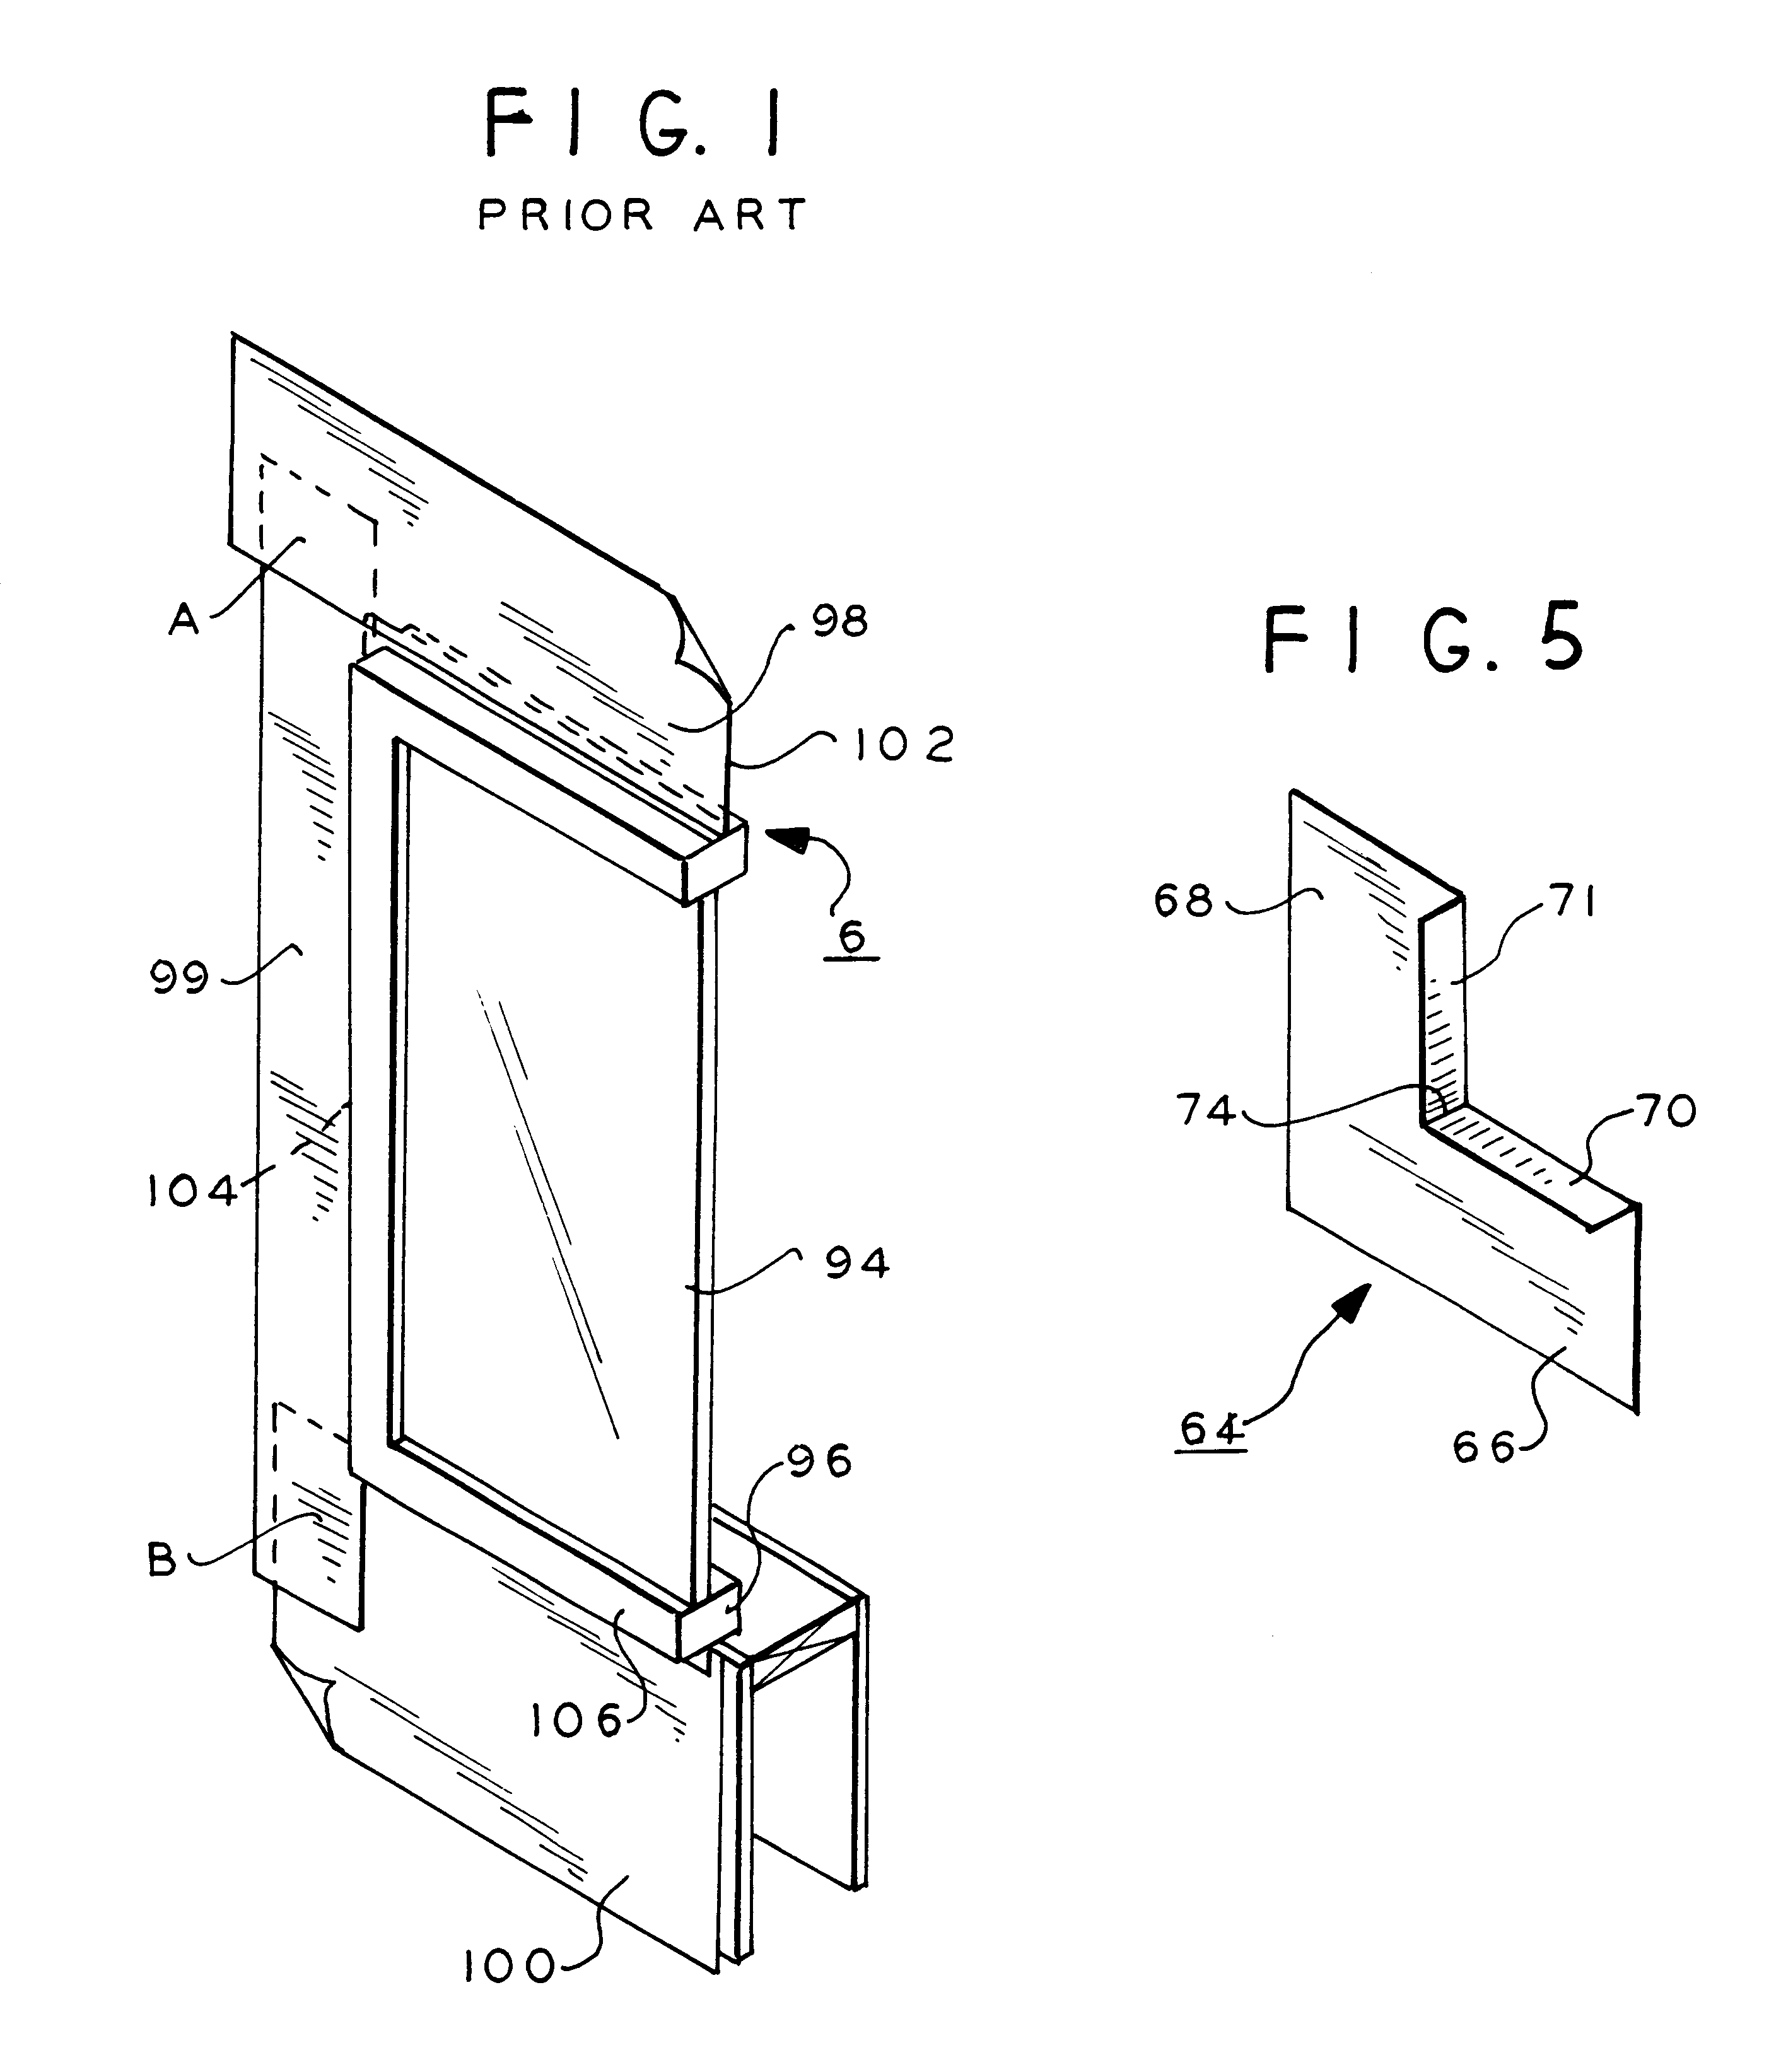 How to install window flashing tape - Patent Drawing